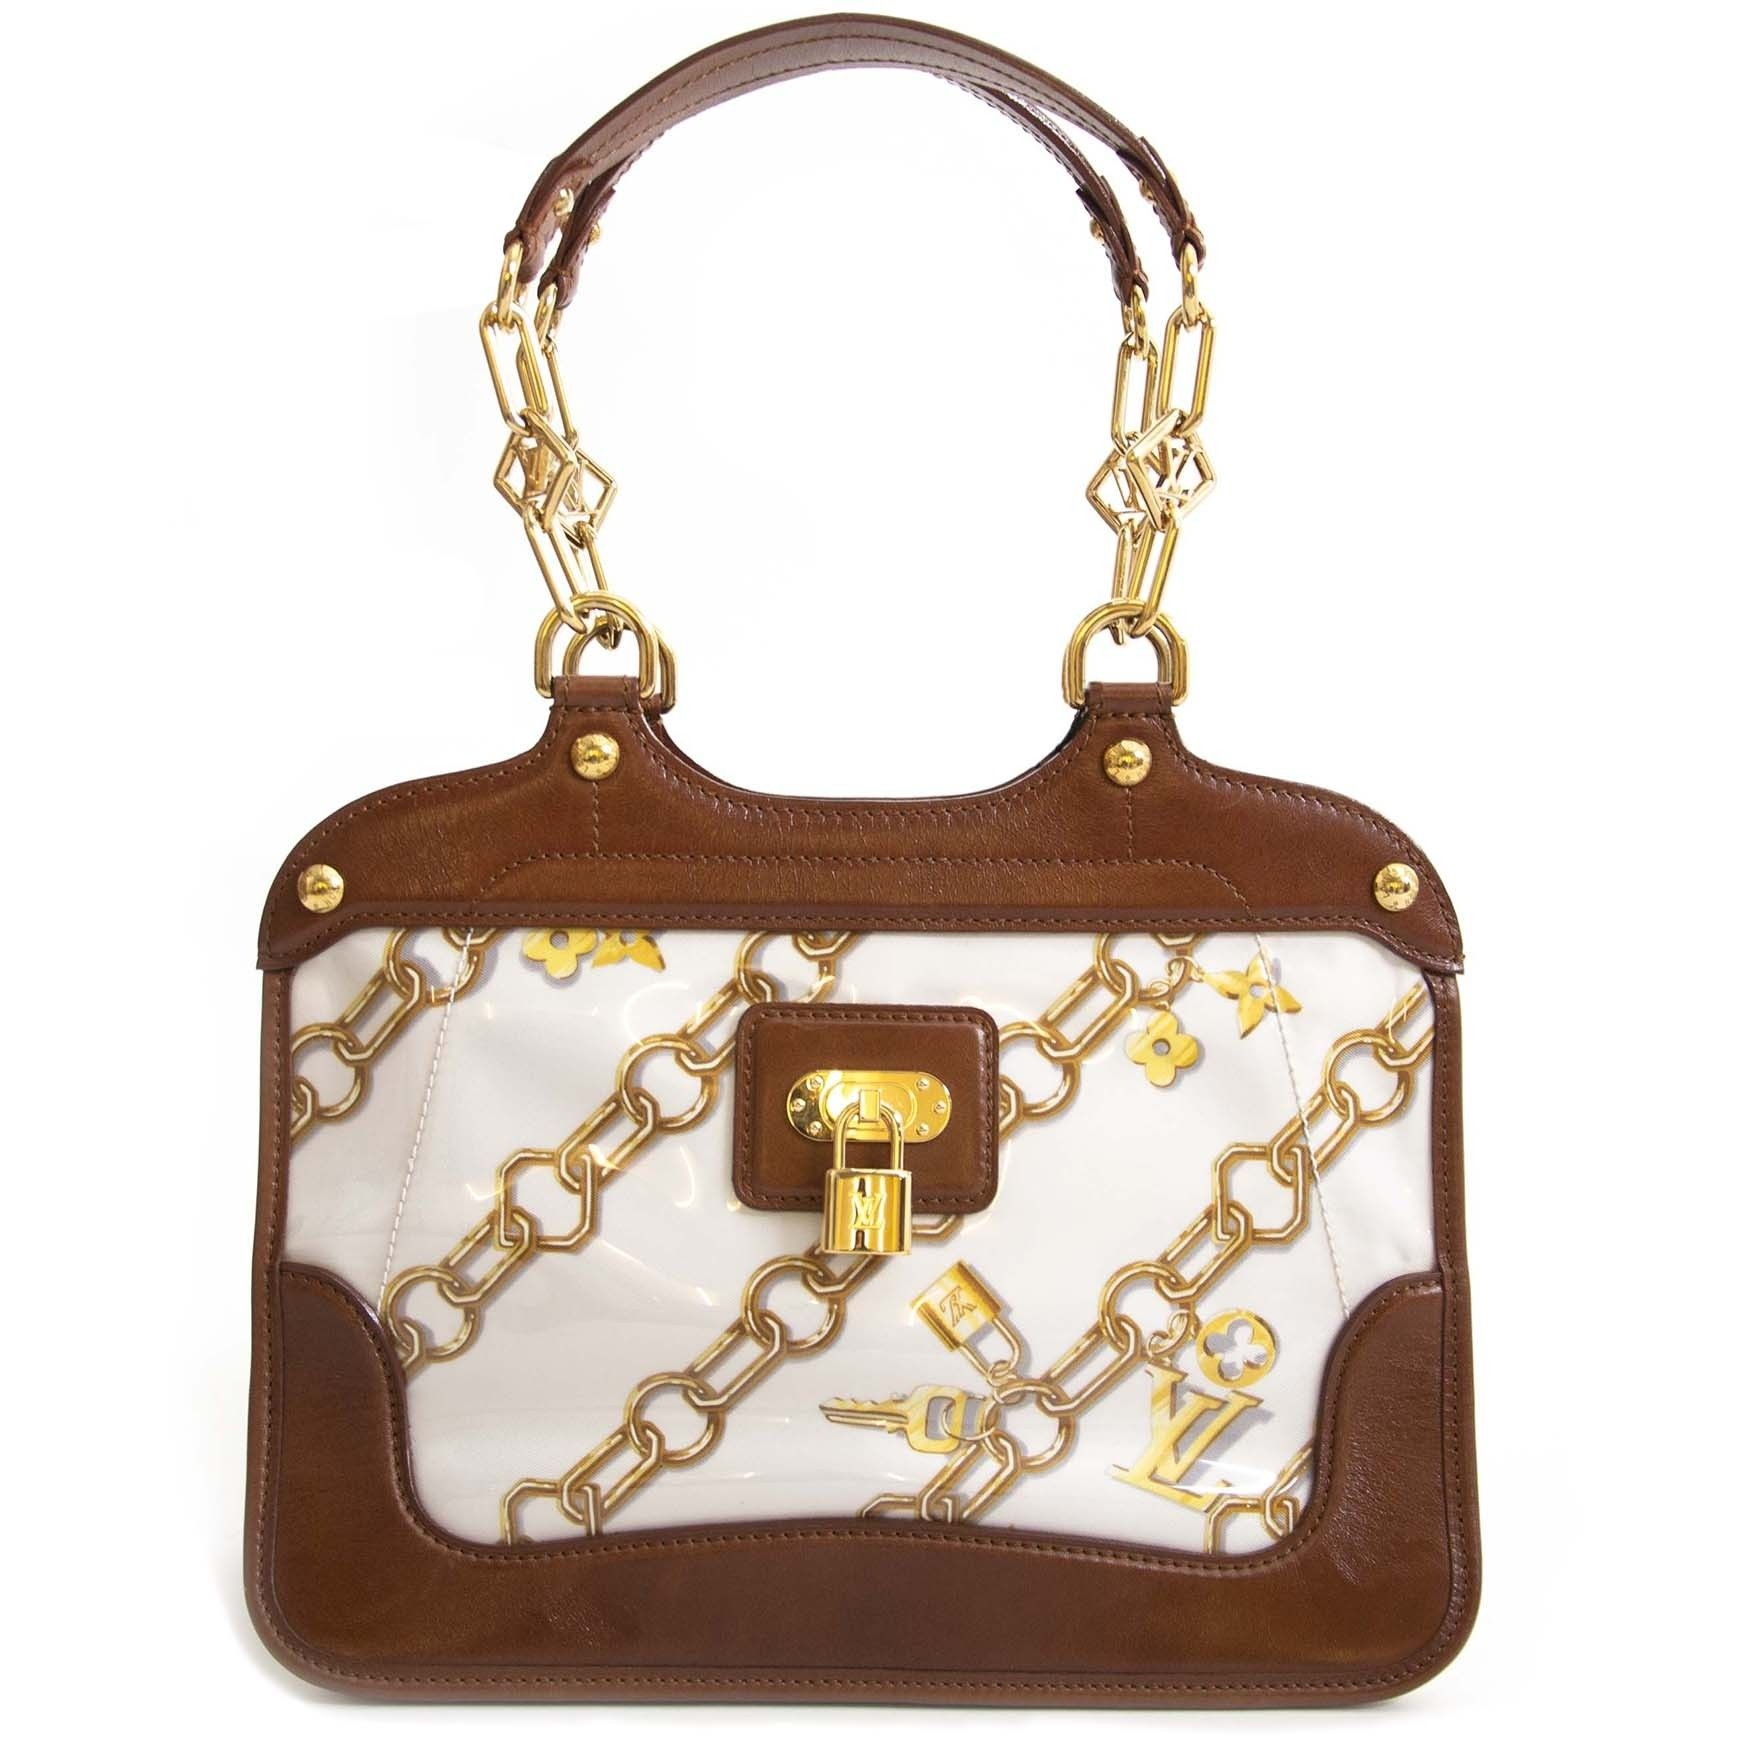 60bbbdb99709 Louis Vuitton Limited Edition Monogram Charms Shoulder Bag